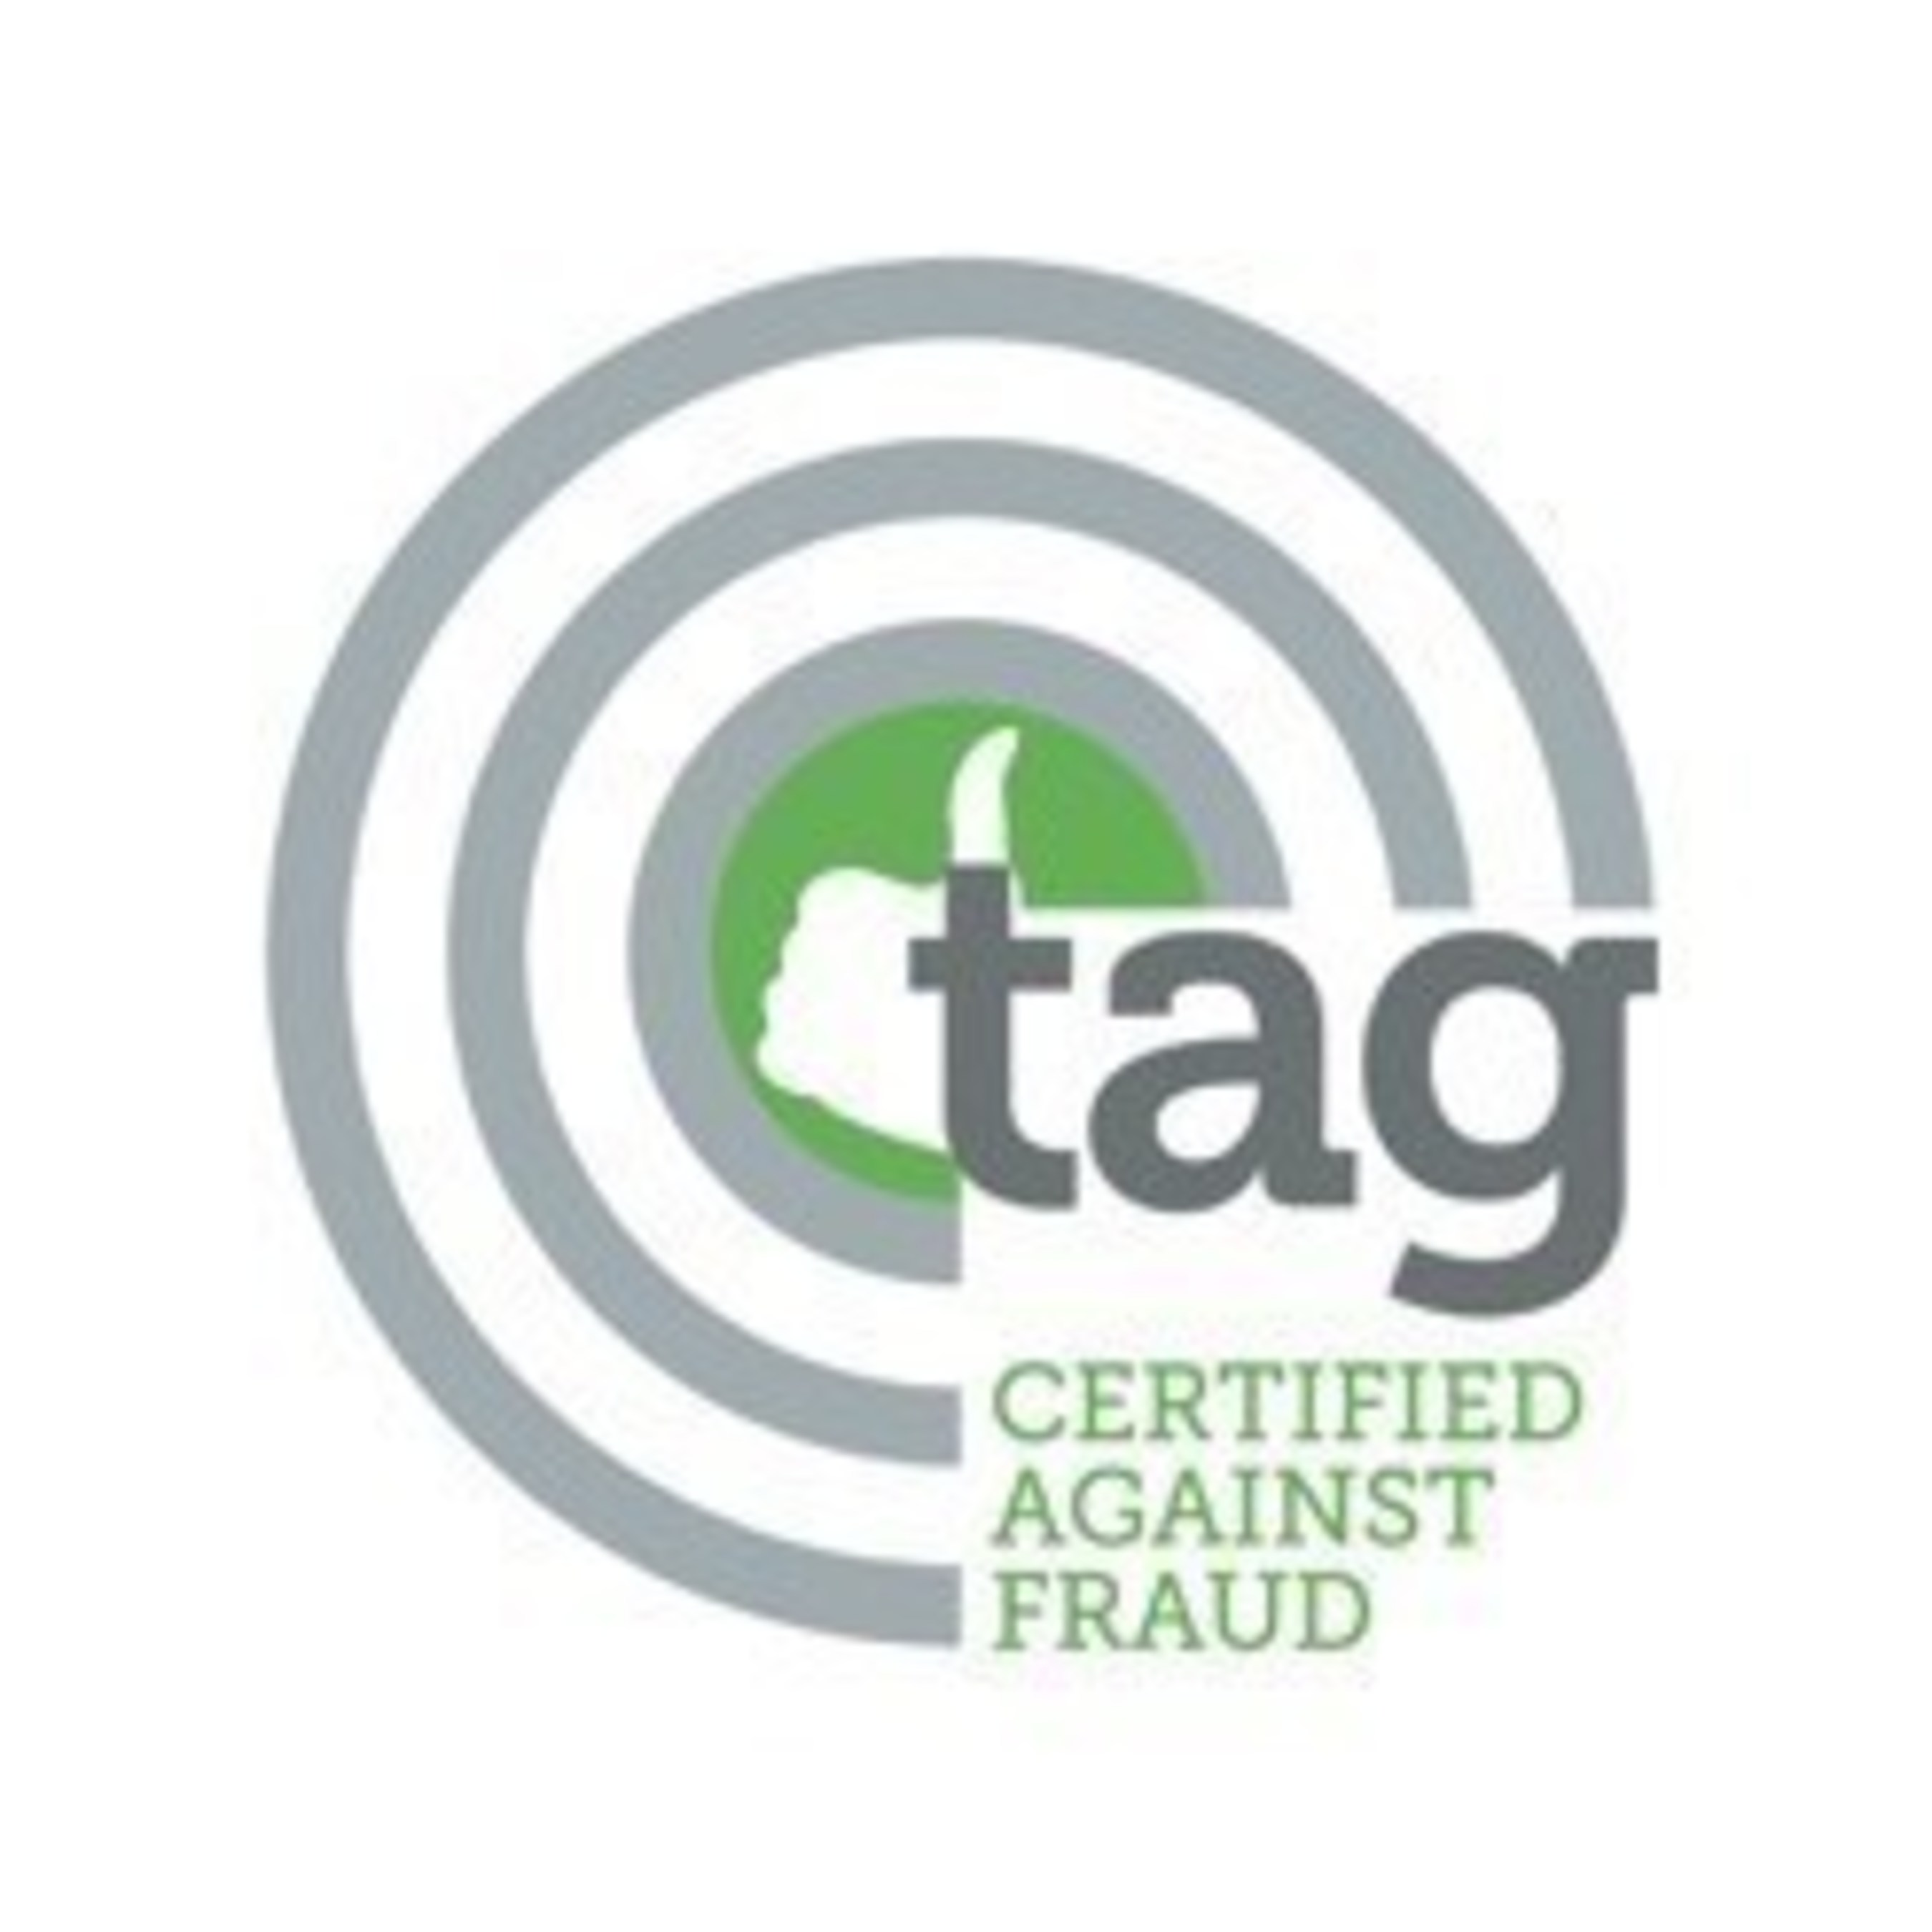 TAG Awards First Group of 'Certified Against Fraud' Seals to Companies Meeting Strict Anti-Fraud Standards